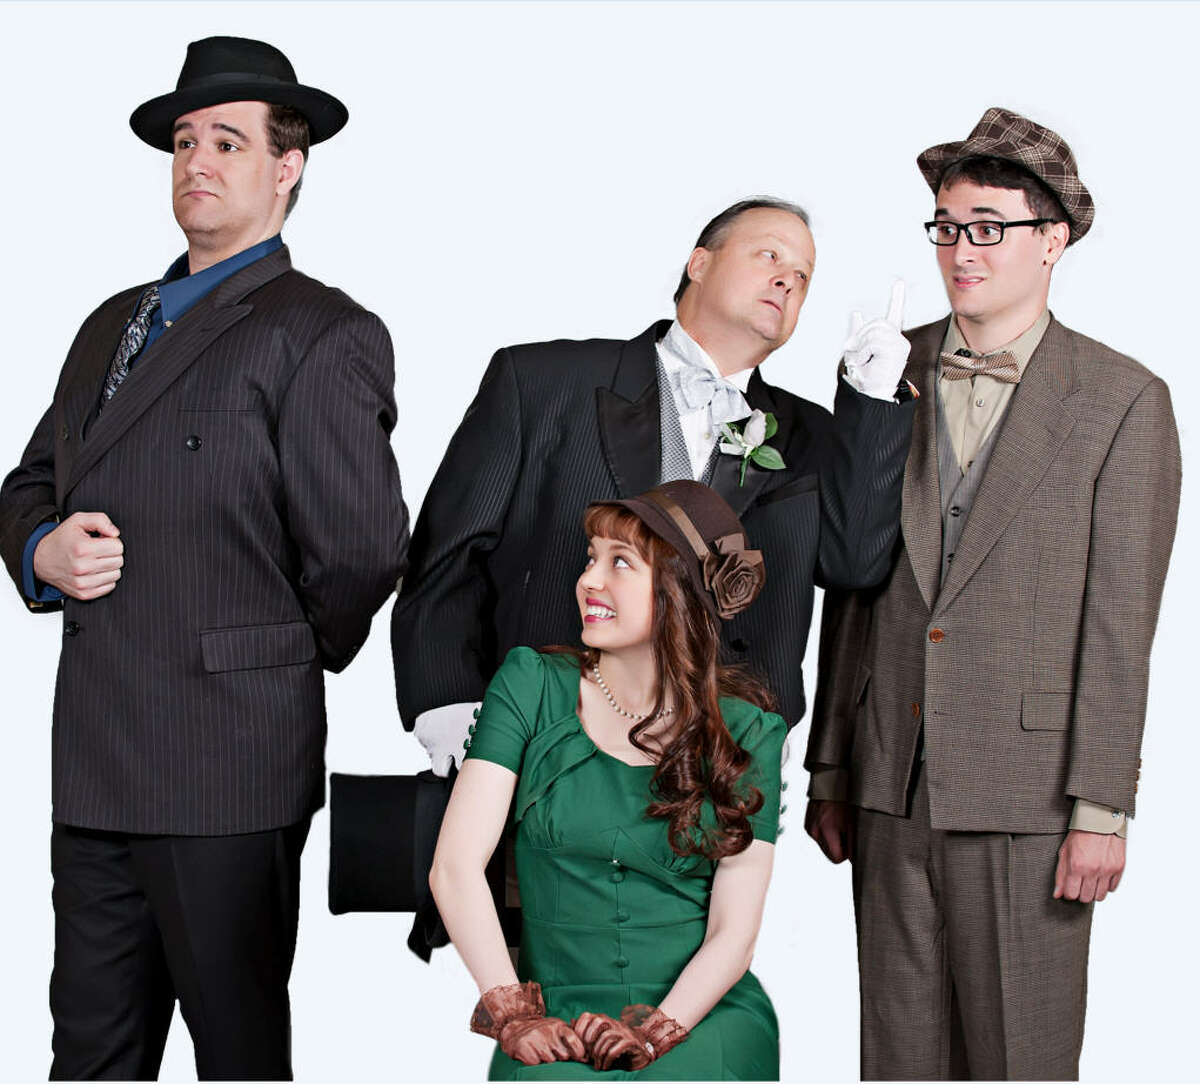 """The cast of """"Lend Me a Tenor"""" includes, from left, Justin Finch (Tito Merelli), Kristen Malisewski (Maggie), Richard Hahn (Saunders), and Jordan O'Neal (Max). """"Lend Me a Tenor"""" is coming to the Houston Family Arts Center stage Sept. 4-27."""